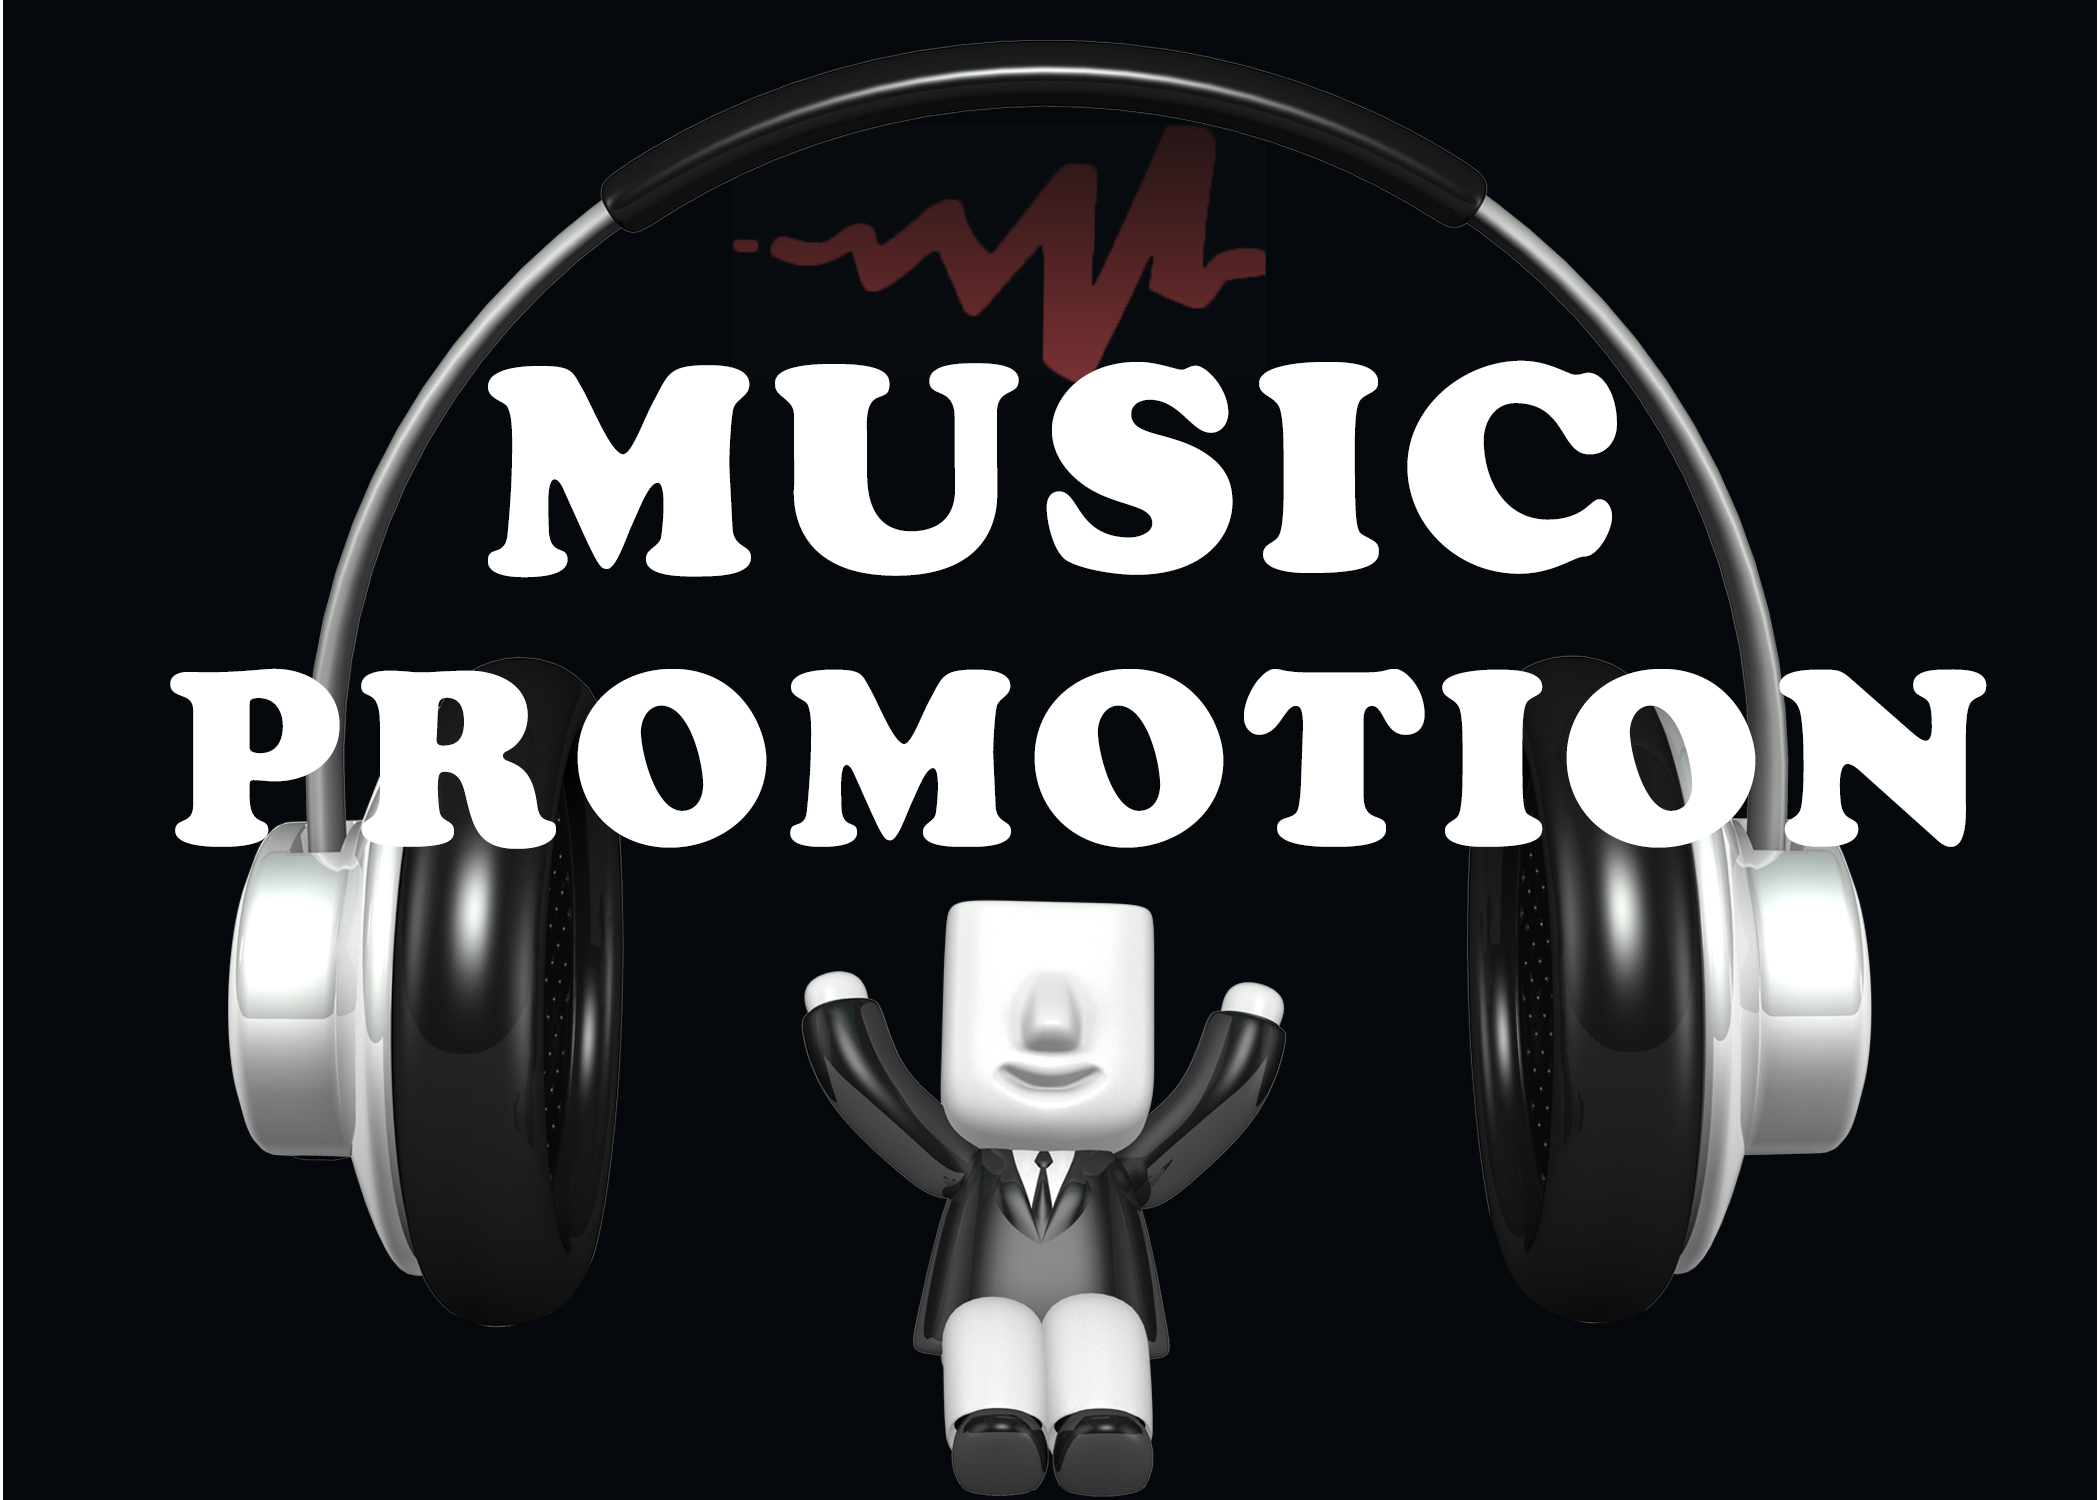 Buy High Quality Audio & Music Promotion Through GaudioMackspro Lovers